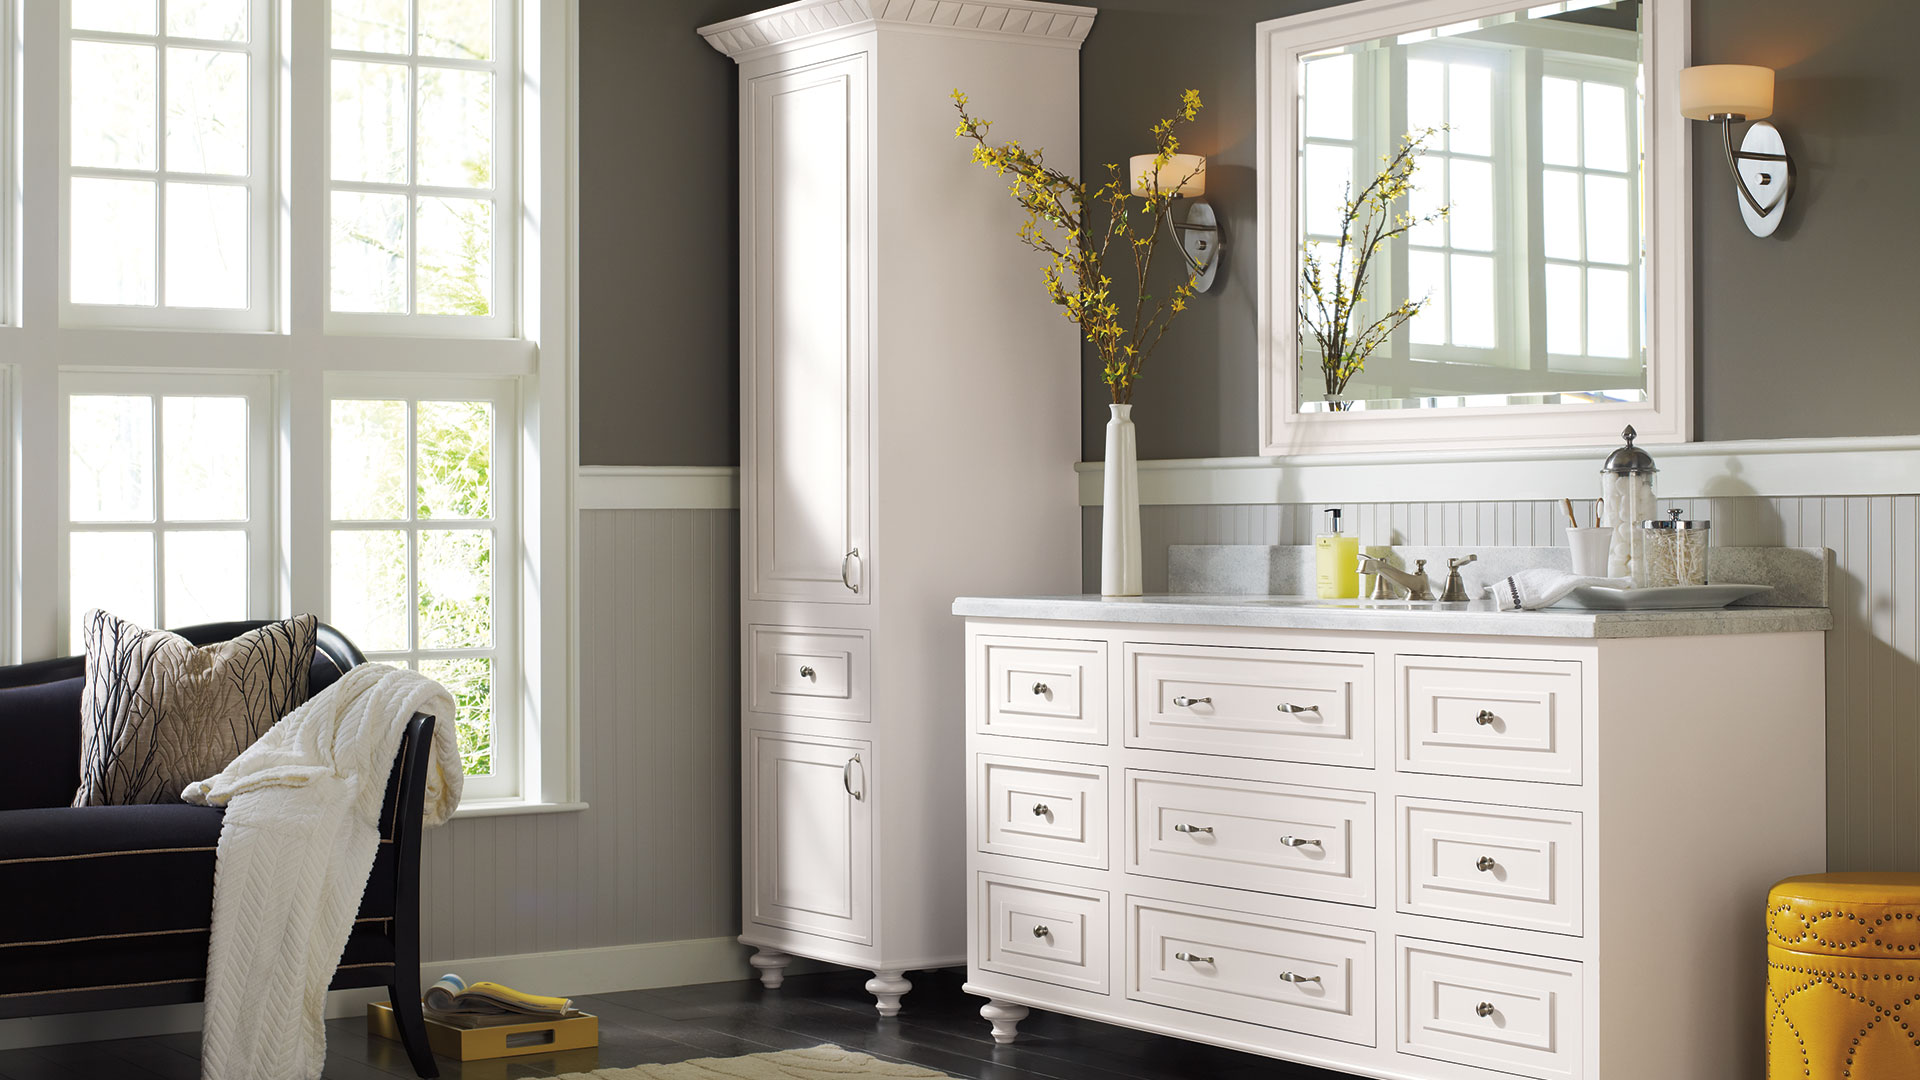 Traditional Bathroom Cabinets in Pure White Finish